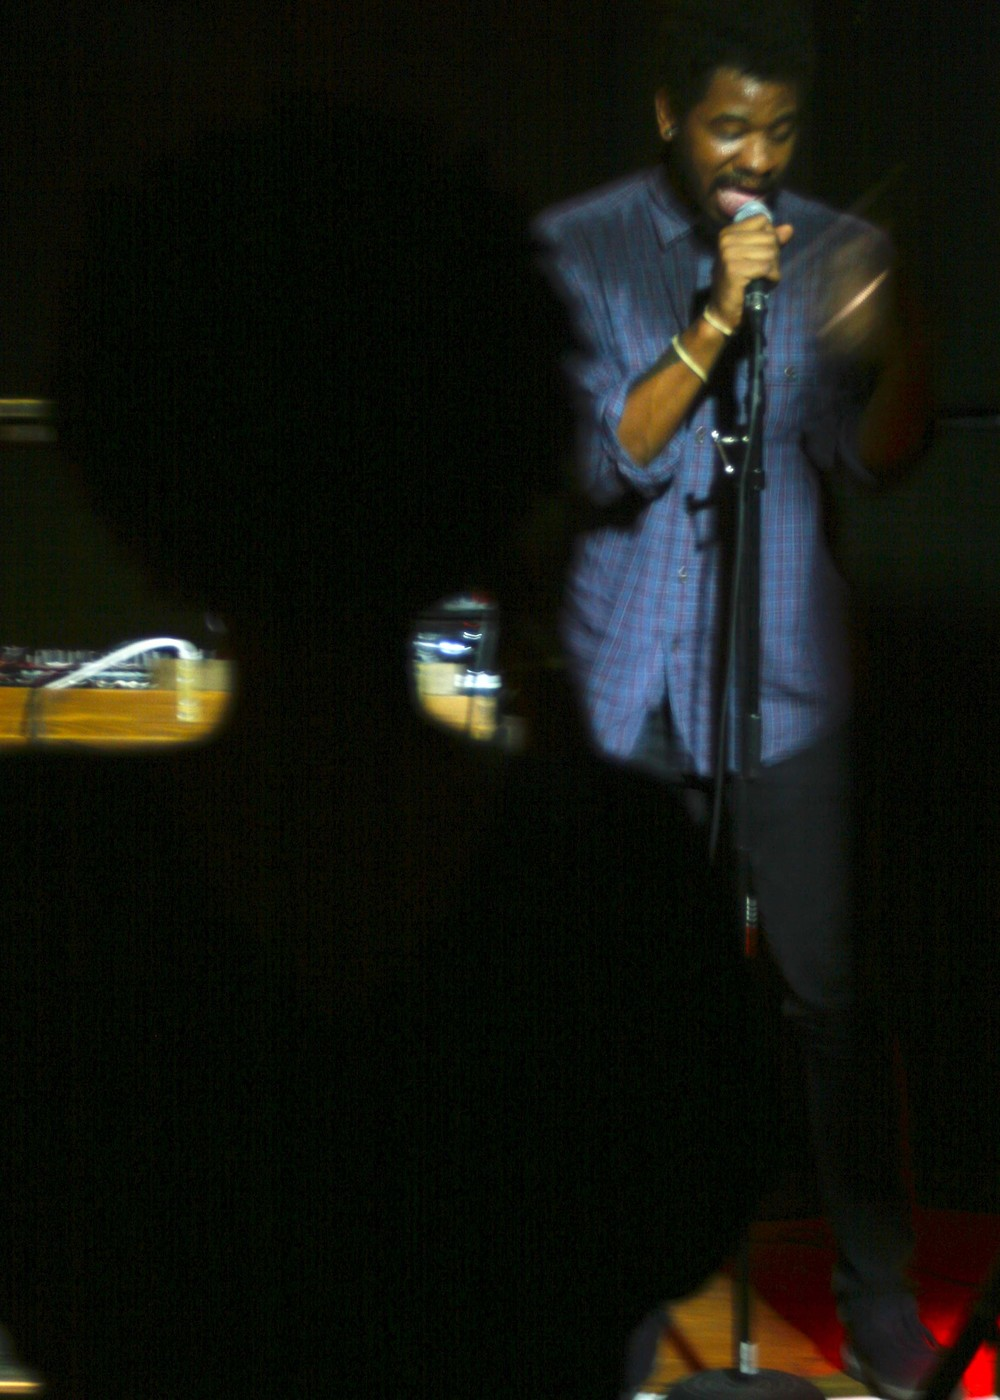 Norvis JR at The Sound Chamber IV presented by Bloodhound NY (August show - recap) Image 4